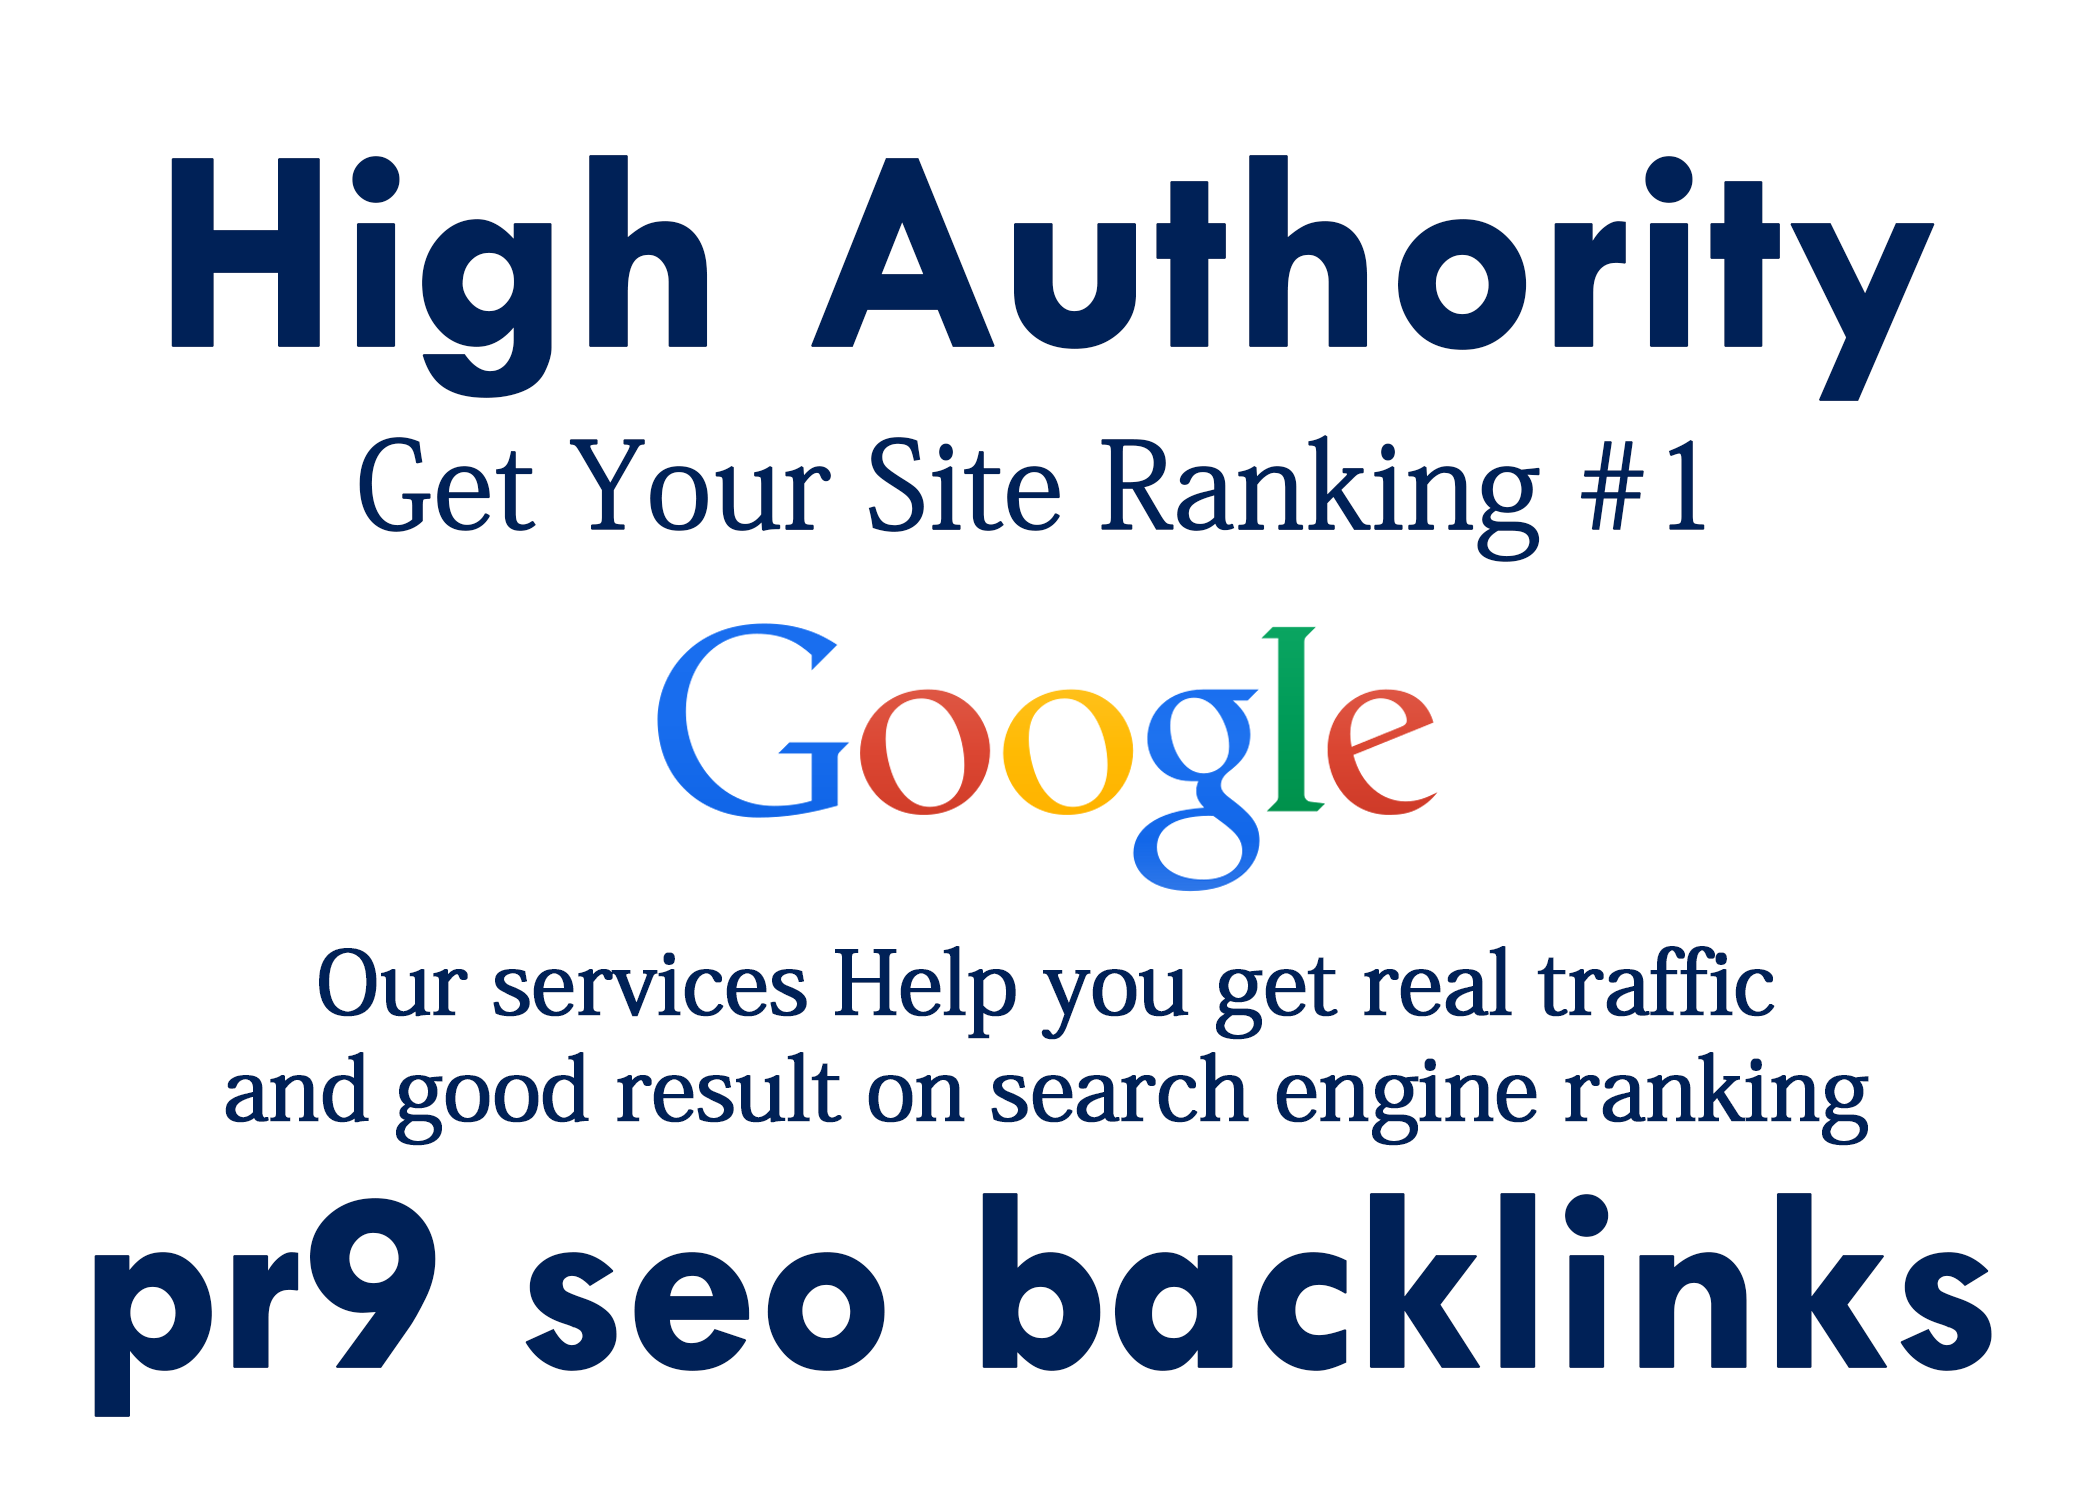 Create Manual 45 PR9 High Authority Backlinks  for Ranking Up Your Site On Google